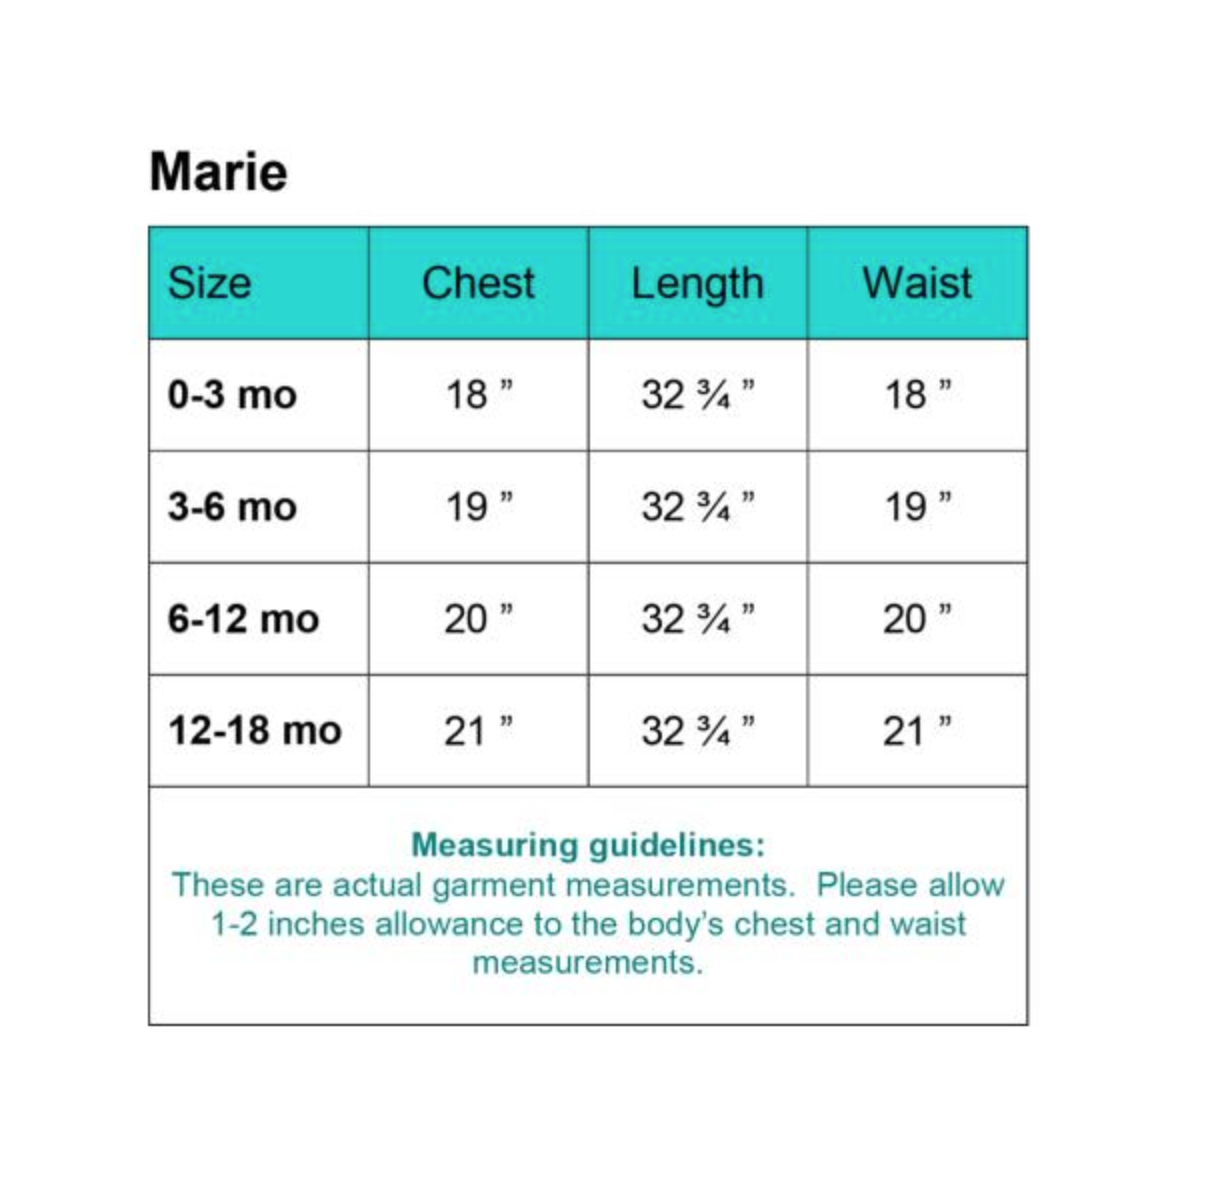 sizing-chart-marie.png